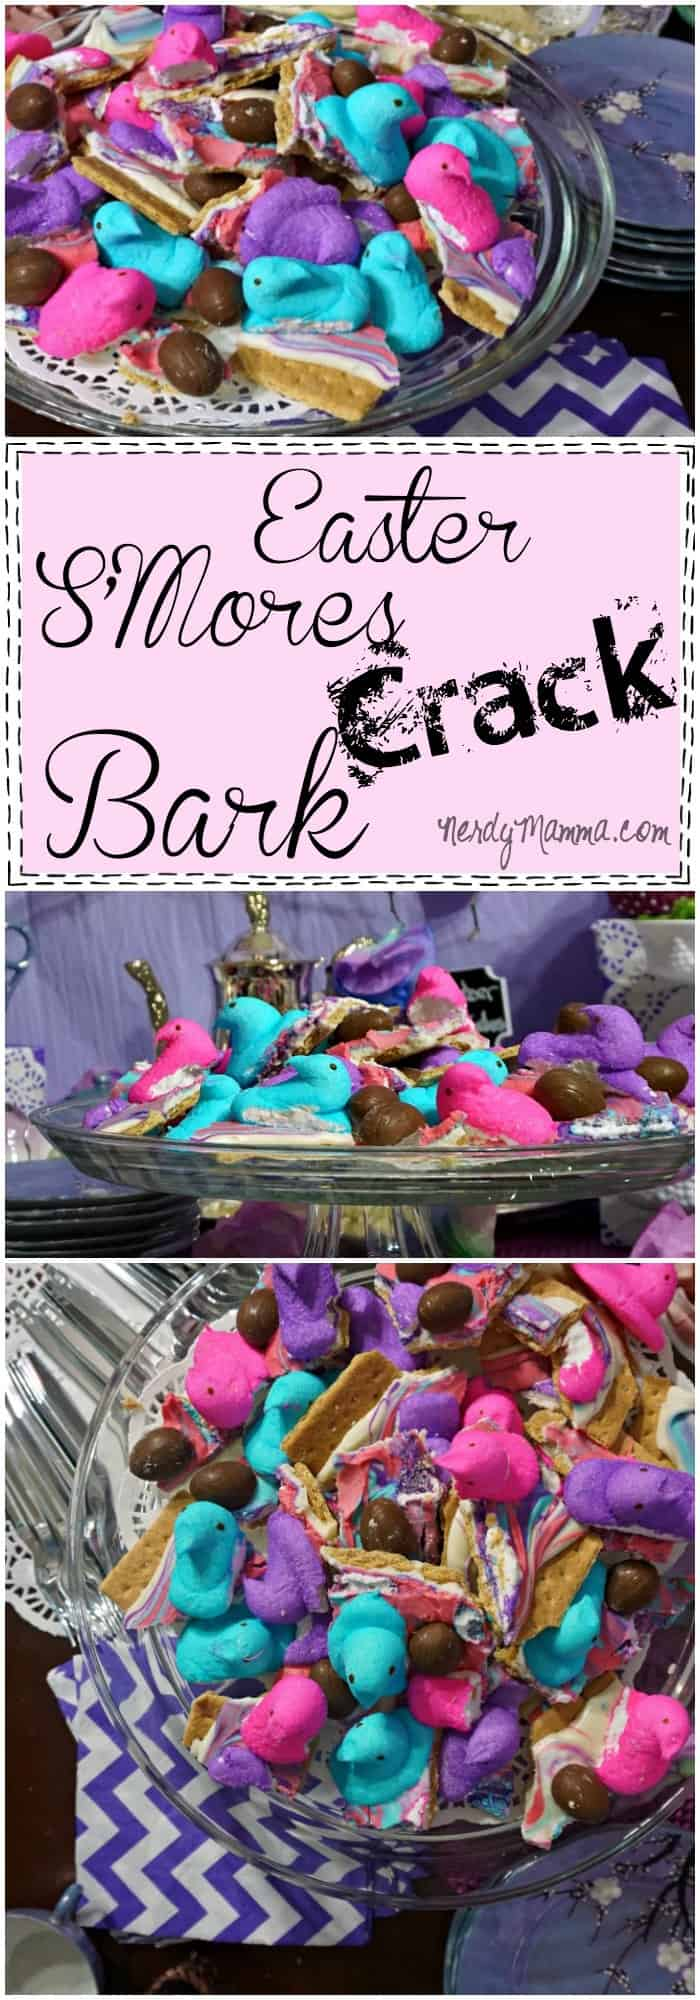 I love how easy this recipe for Easter S'mores Crack Bark is! Takes about 15 minutes to make--and then you have the perfect Easter treat!